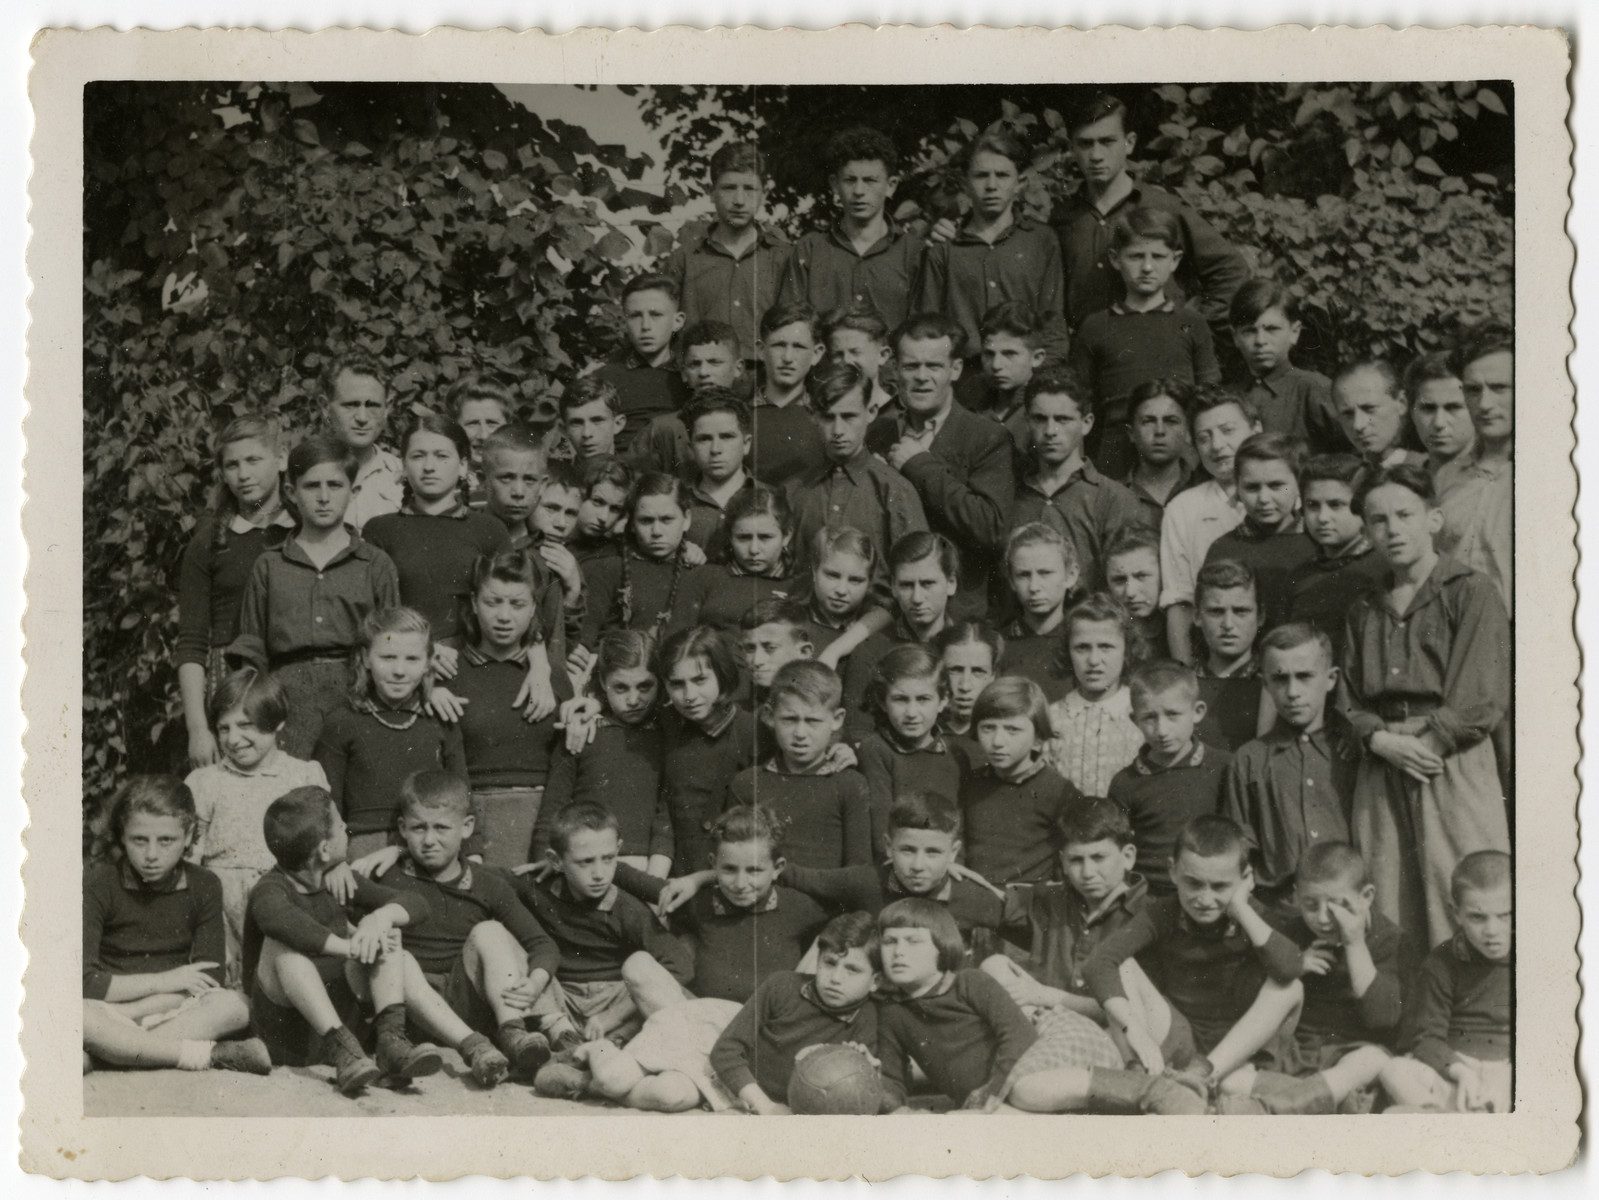 Group portrait of Jewish orphans being cared for in the Schlachtensee displaced persons' camp.